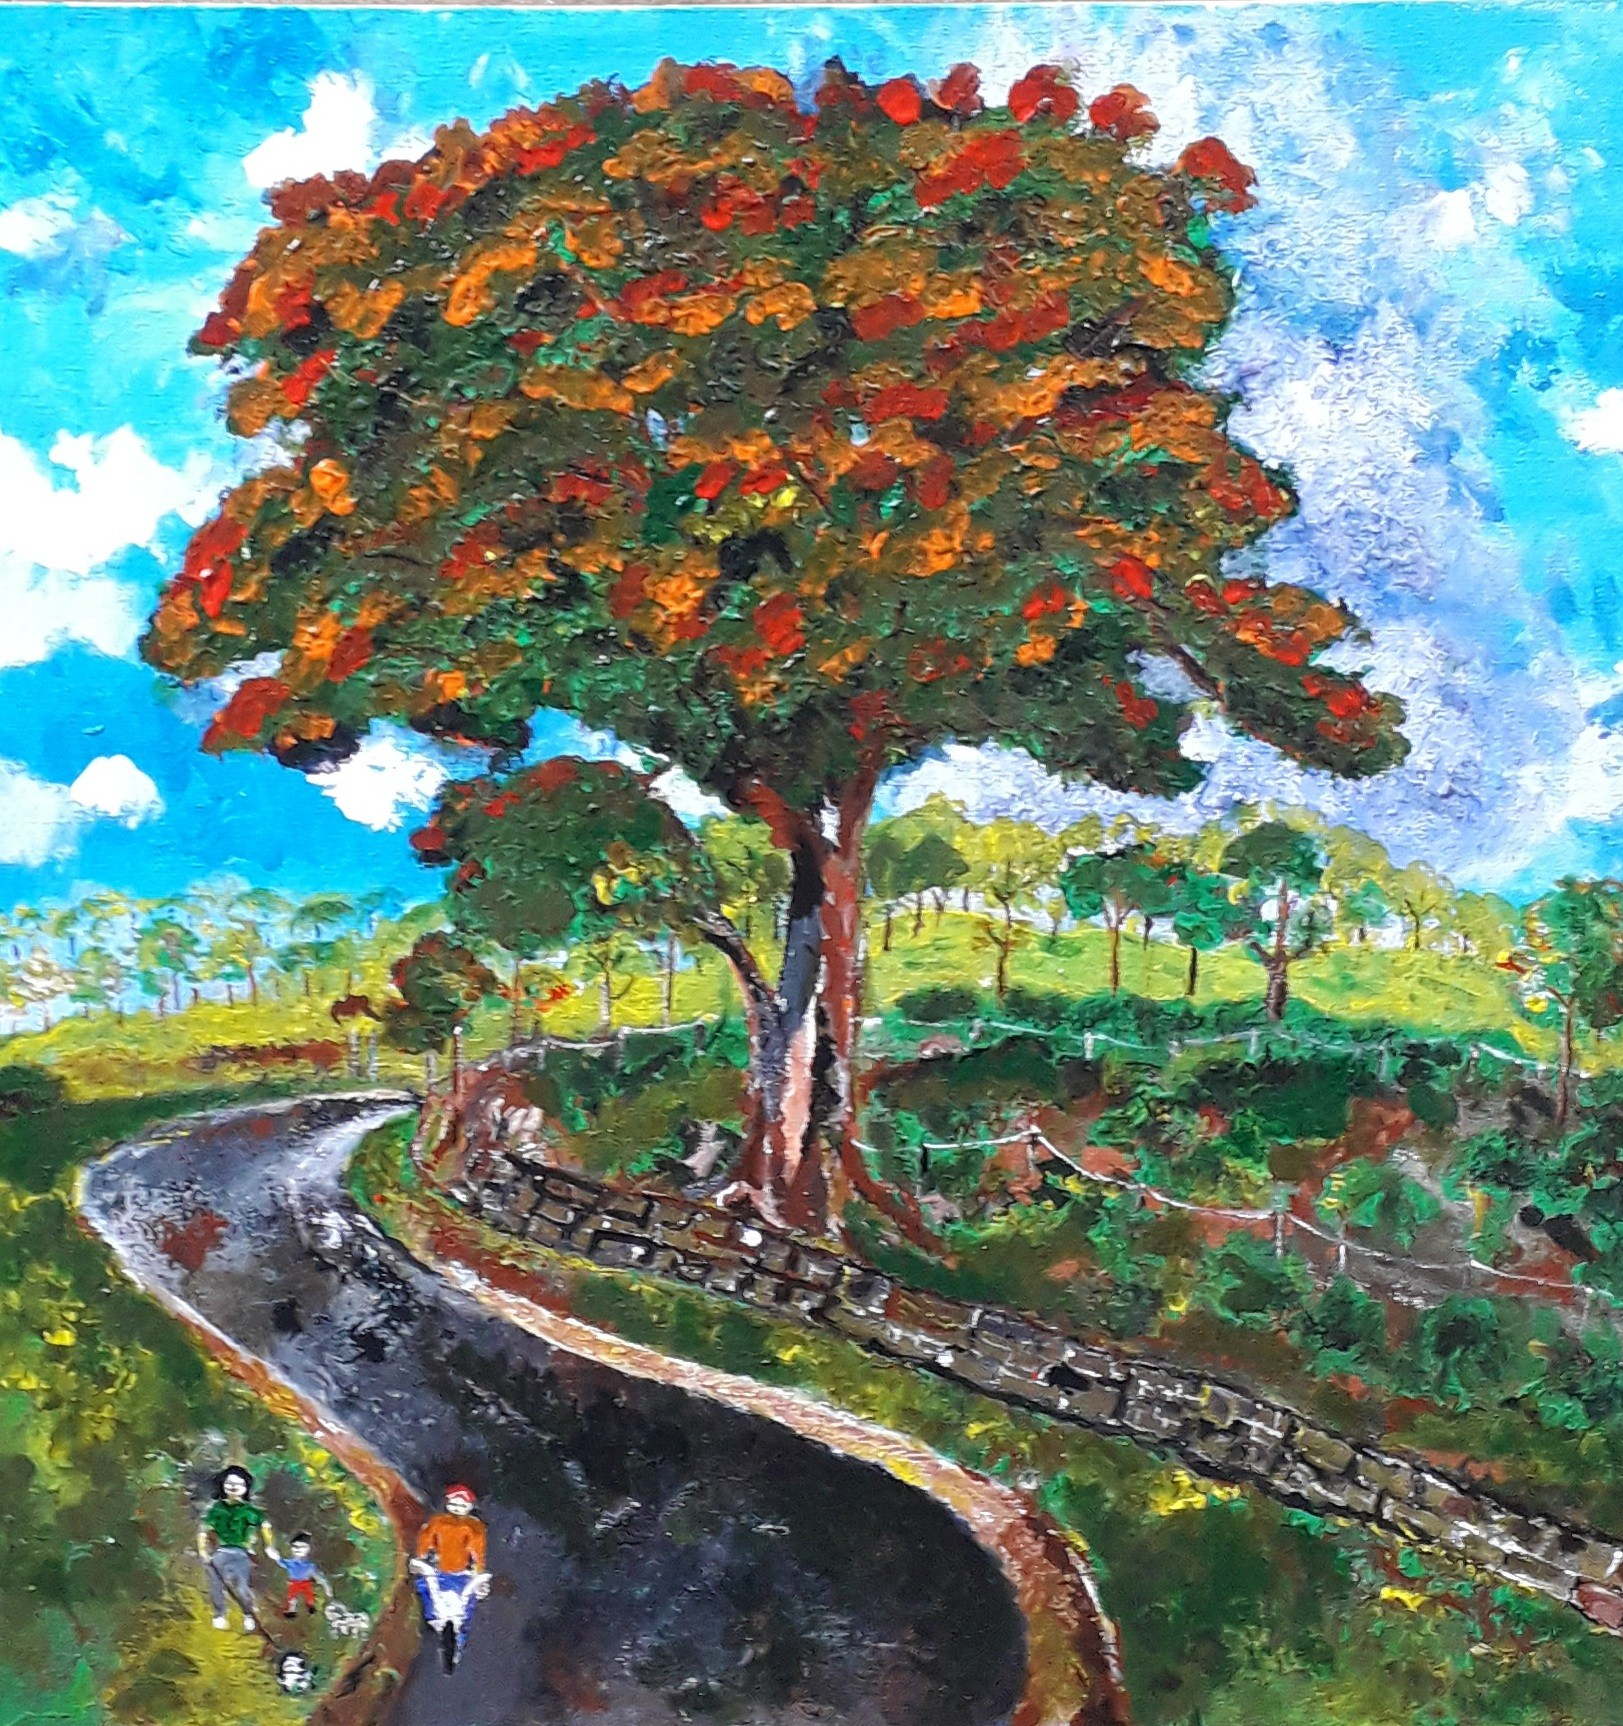 Colorful Tree - And Family Walk by Simpson David